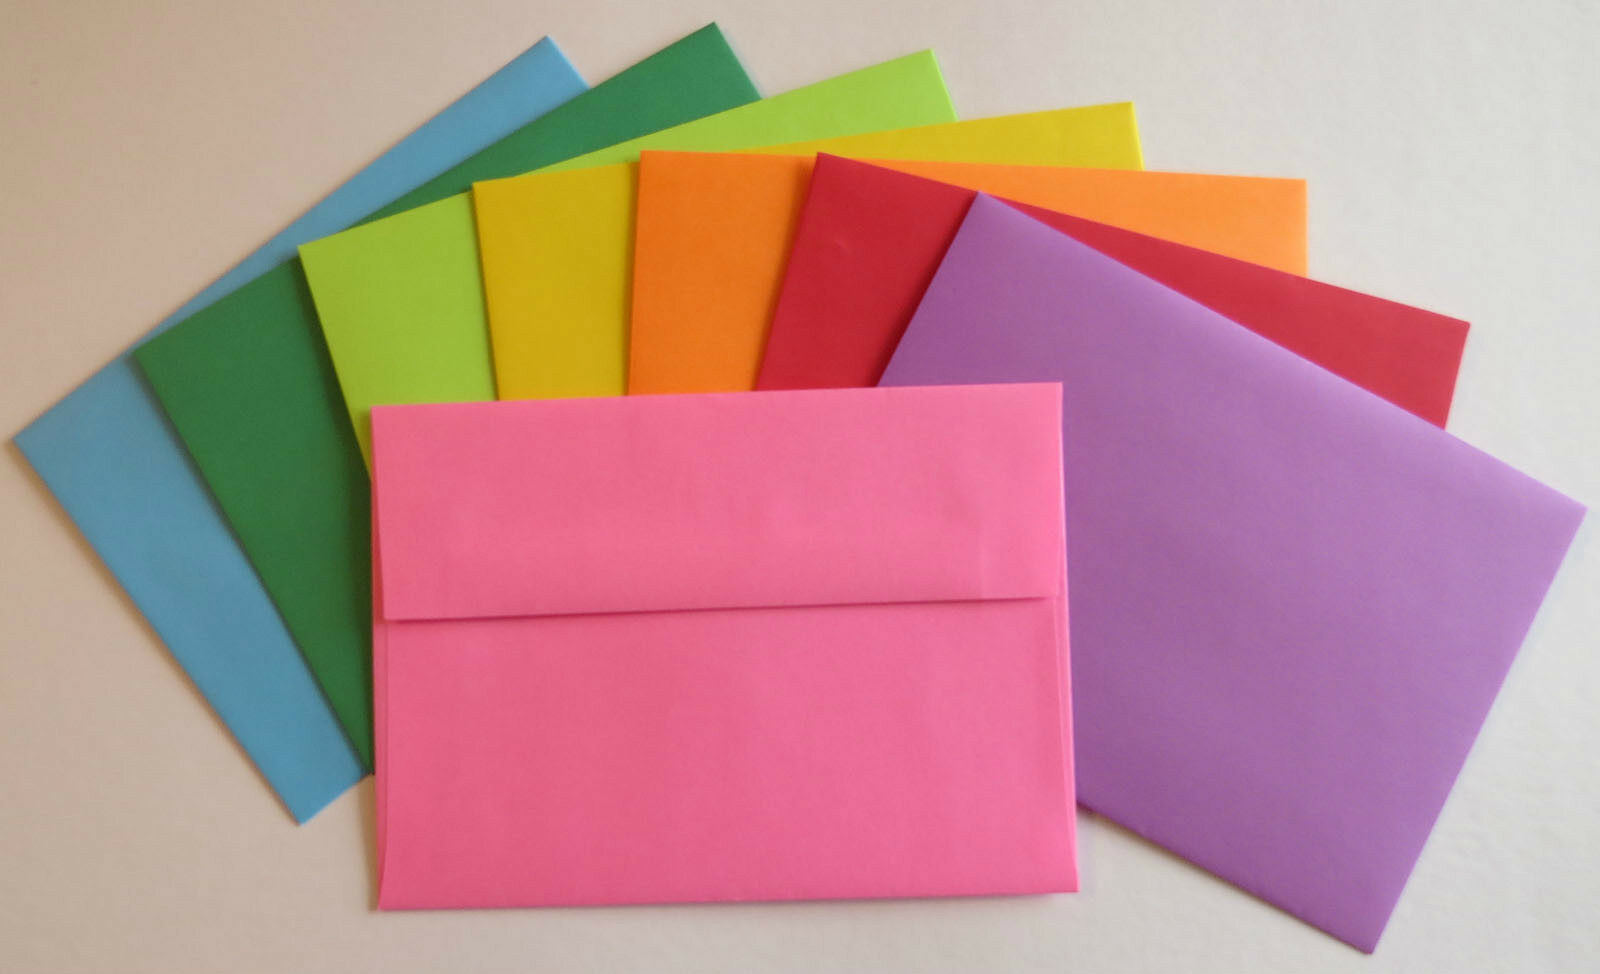 A7 7 14 X 5 14 Astrobright Colored Greeting Card Paper Envelopes